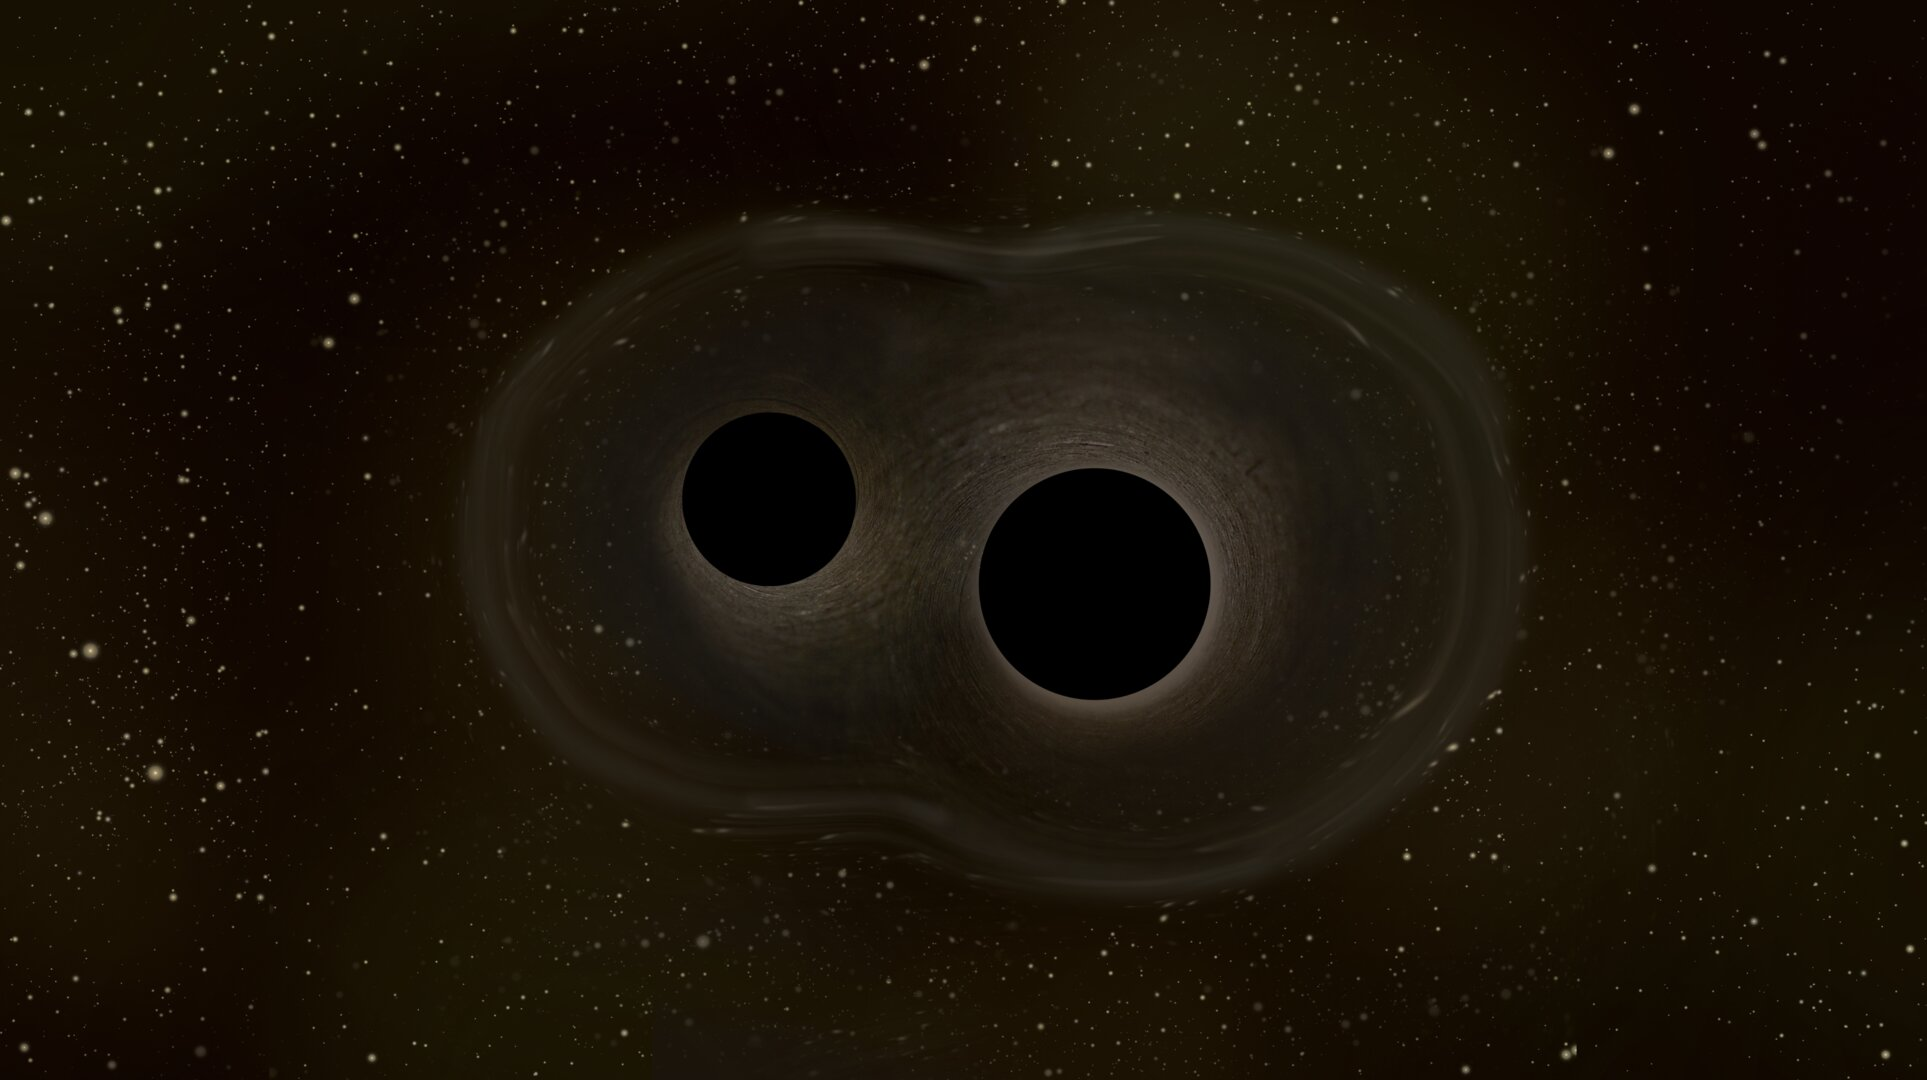 ESA - Two merging black holes